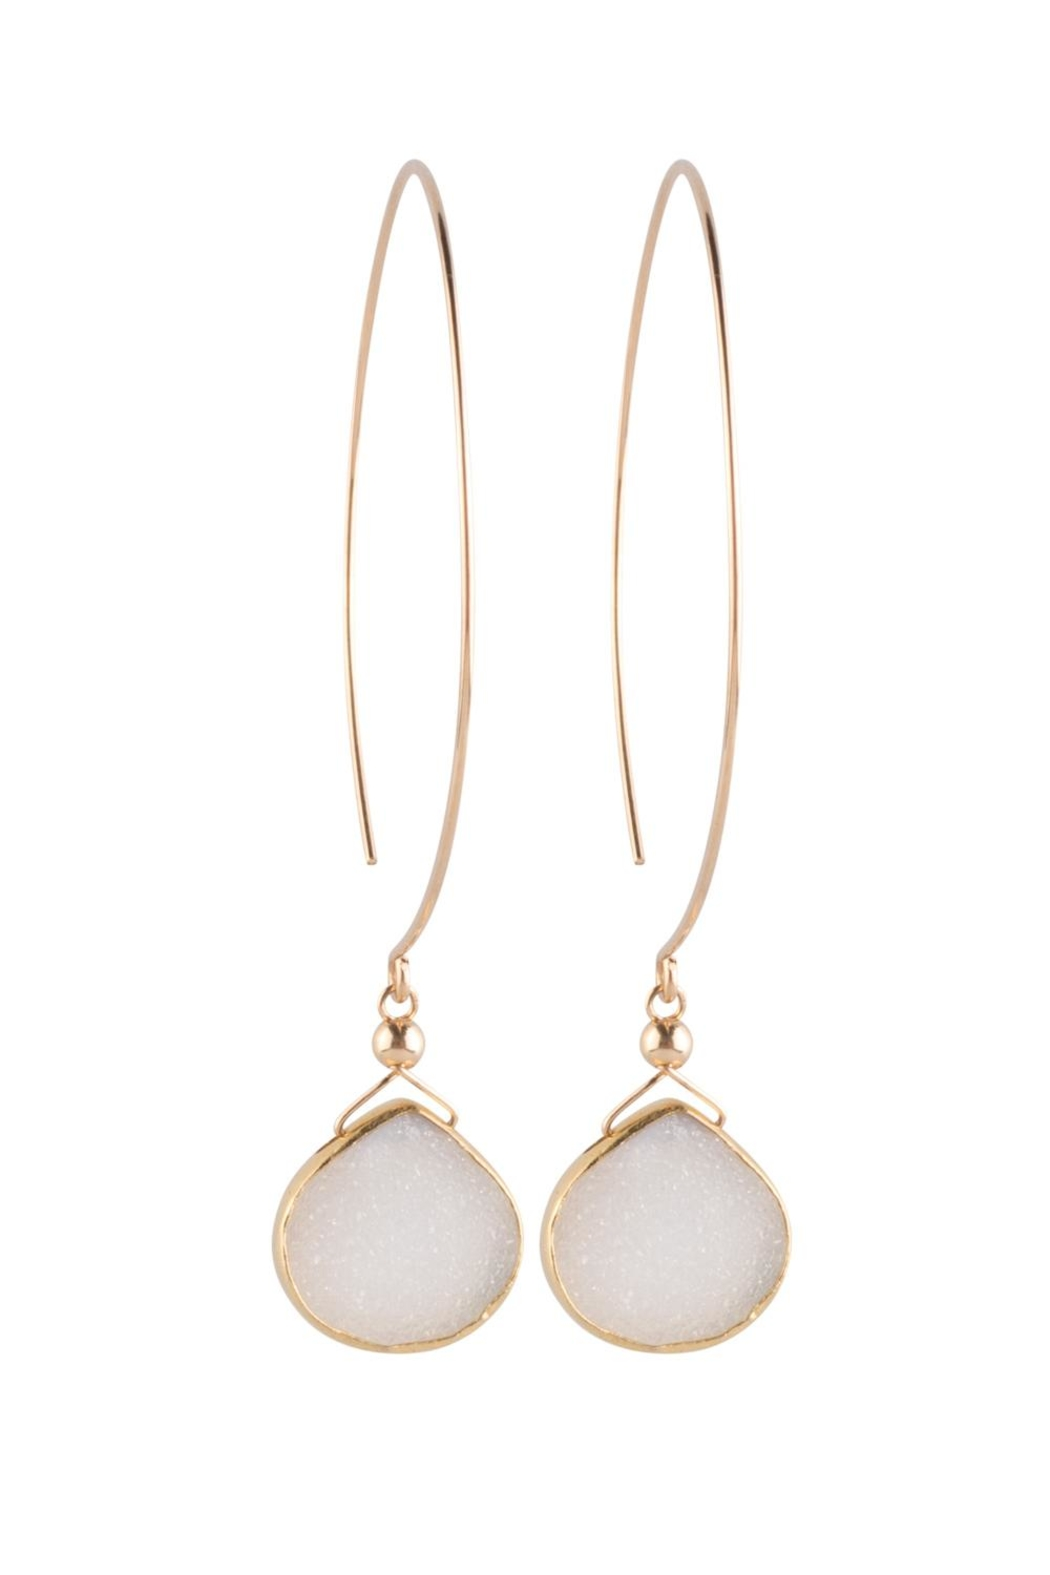 Sayulita Sol Jewelry Gold-Hoop White-Druzy Earrings - Front Cropped Image